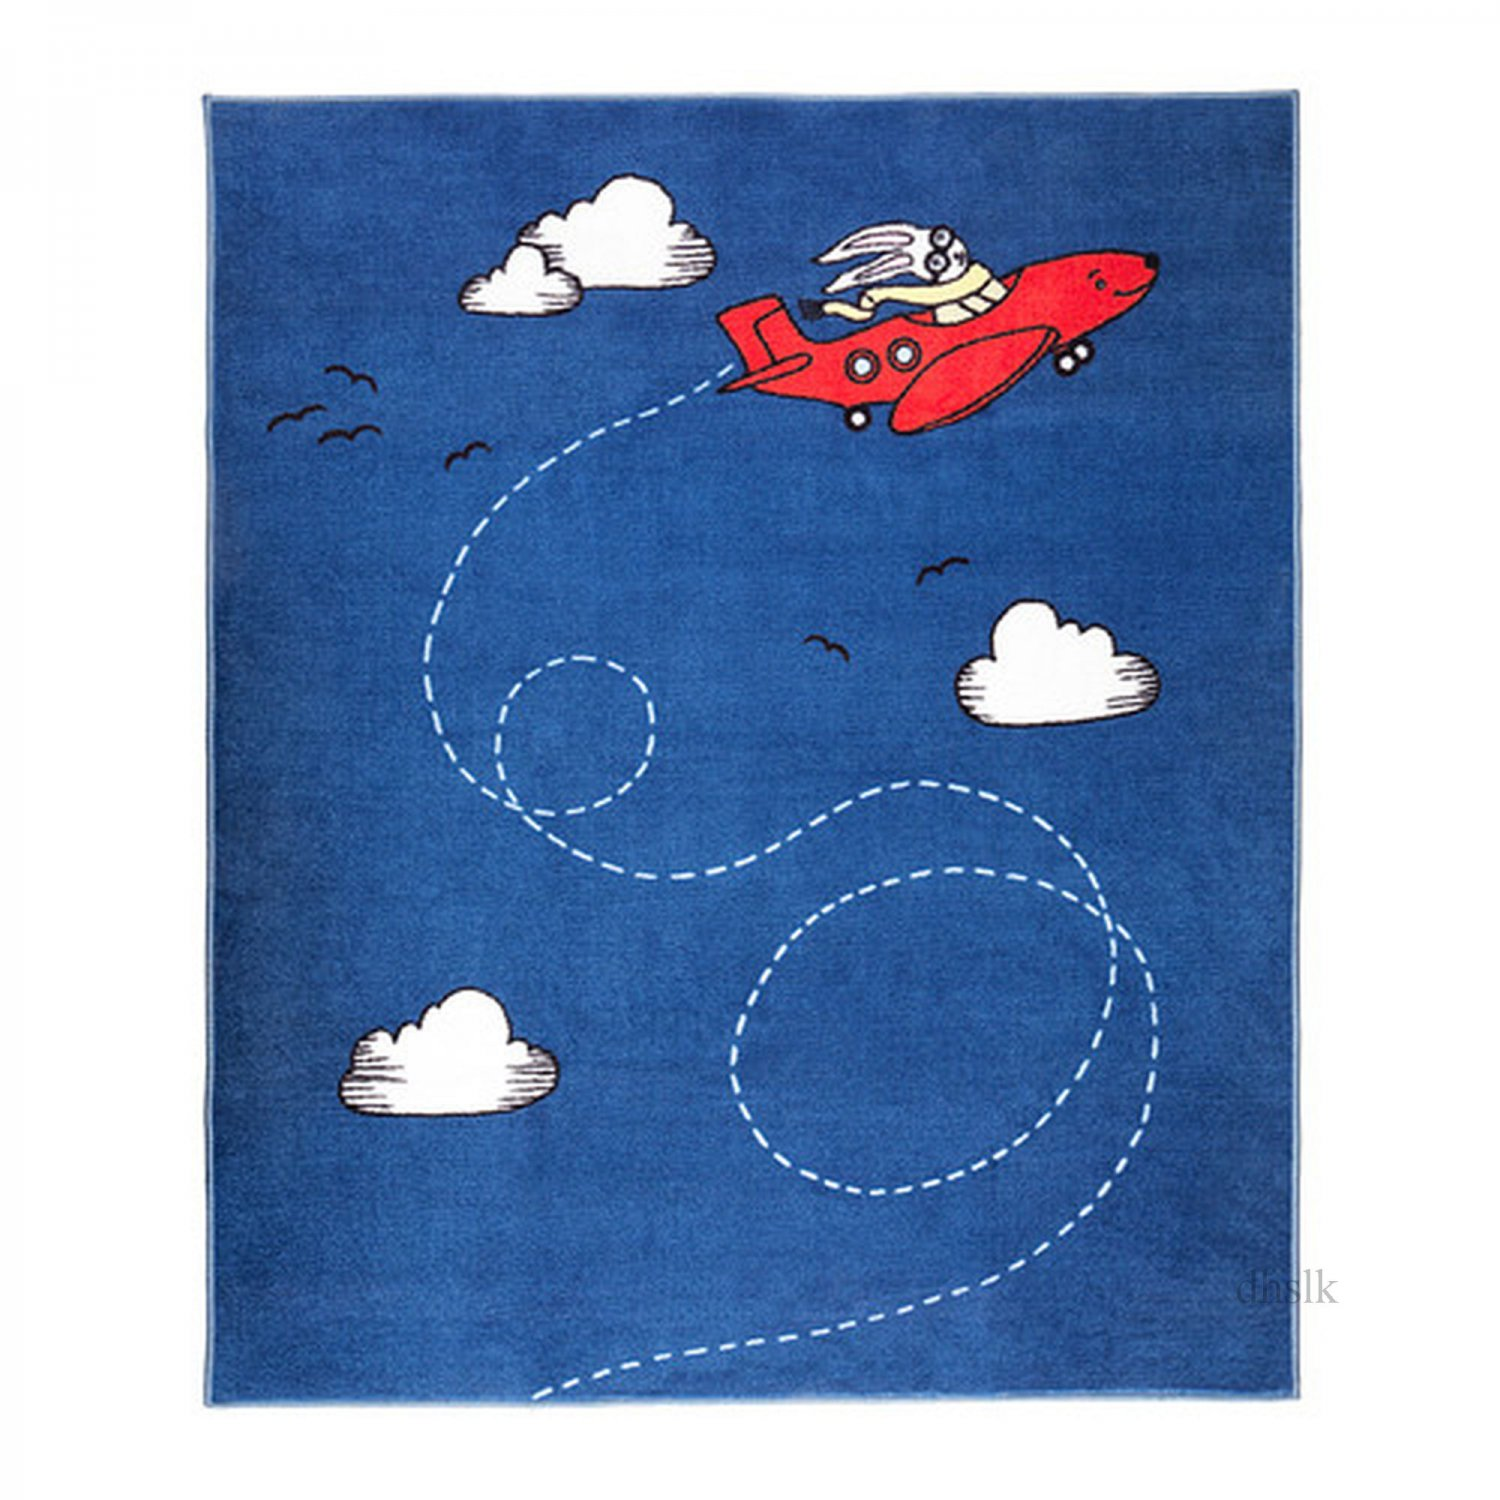 Ikea Rugs Childrens: IKEA FLYGTUR Area Throw RUG Mat BUE Kids Decor AIRPLANE